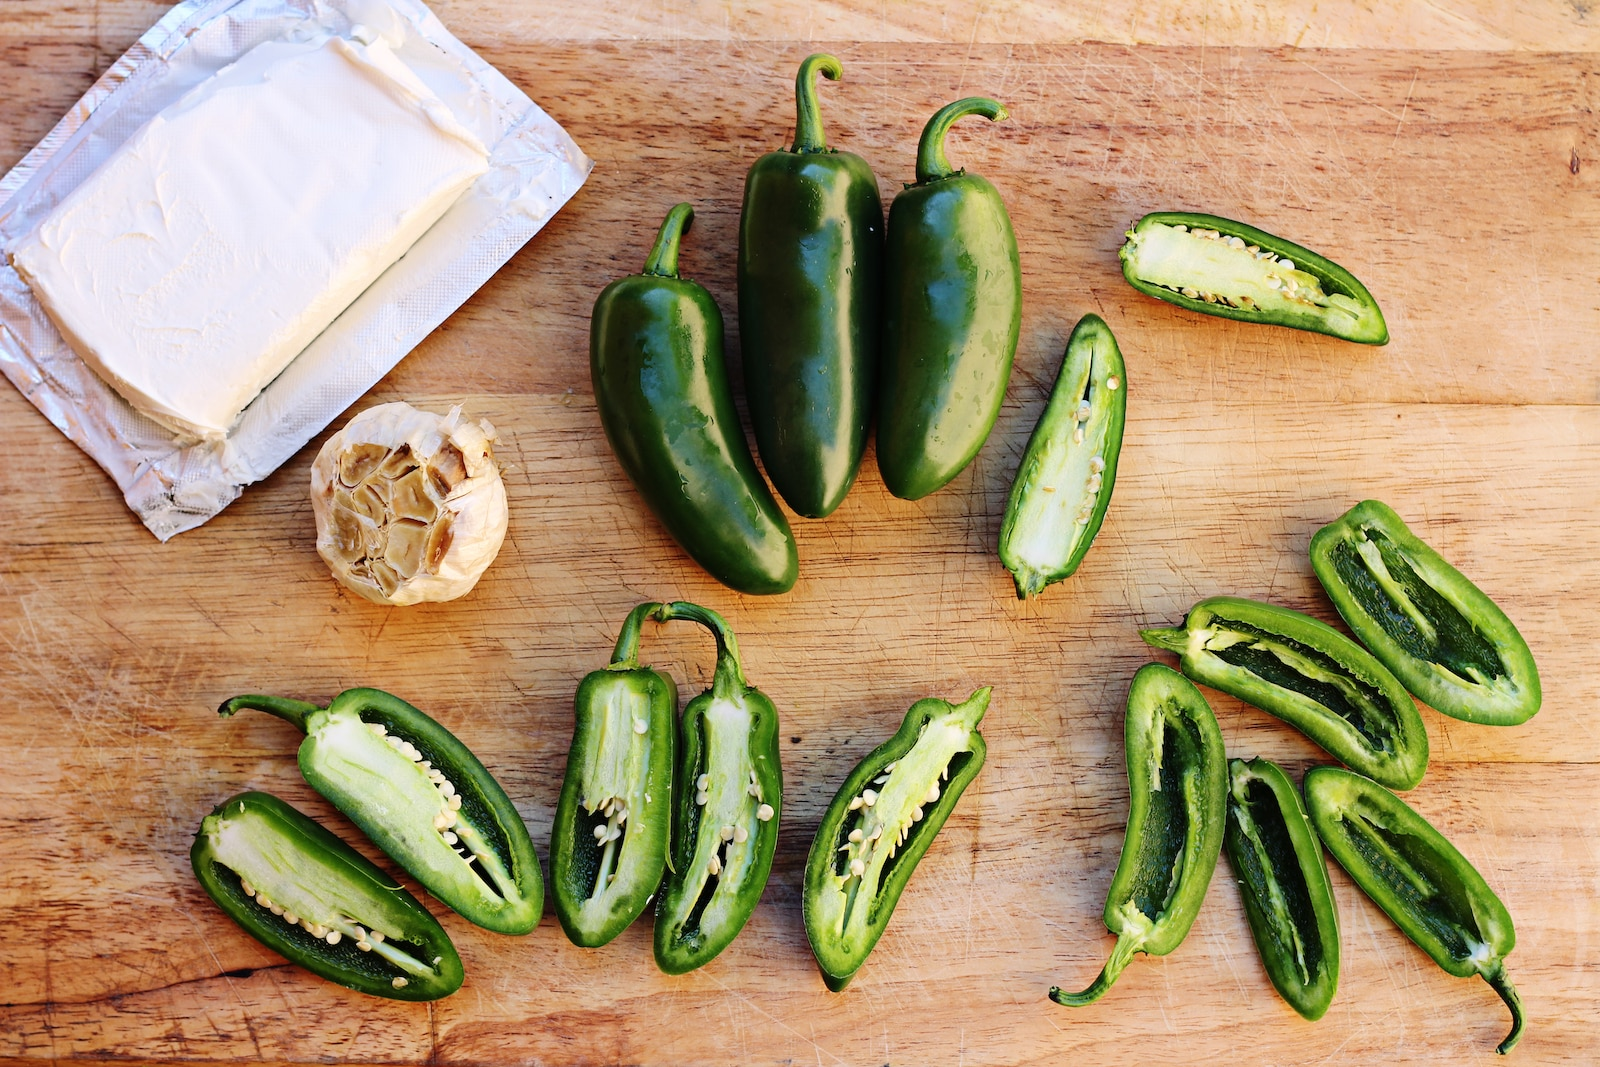 What's A Good Jalapeño Substitute?